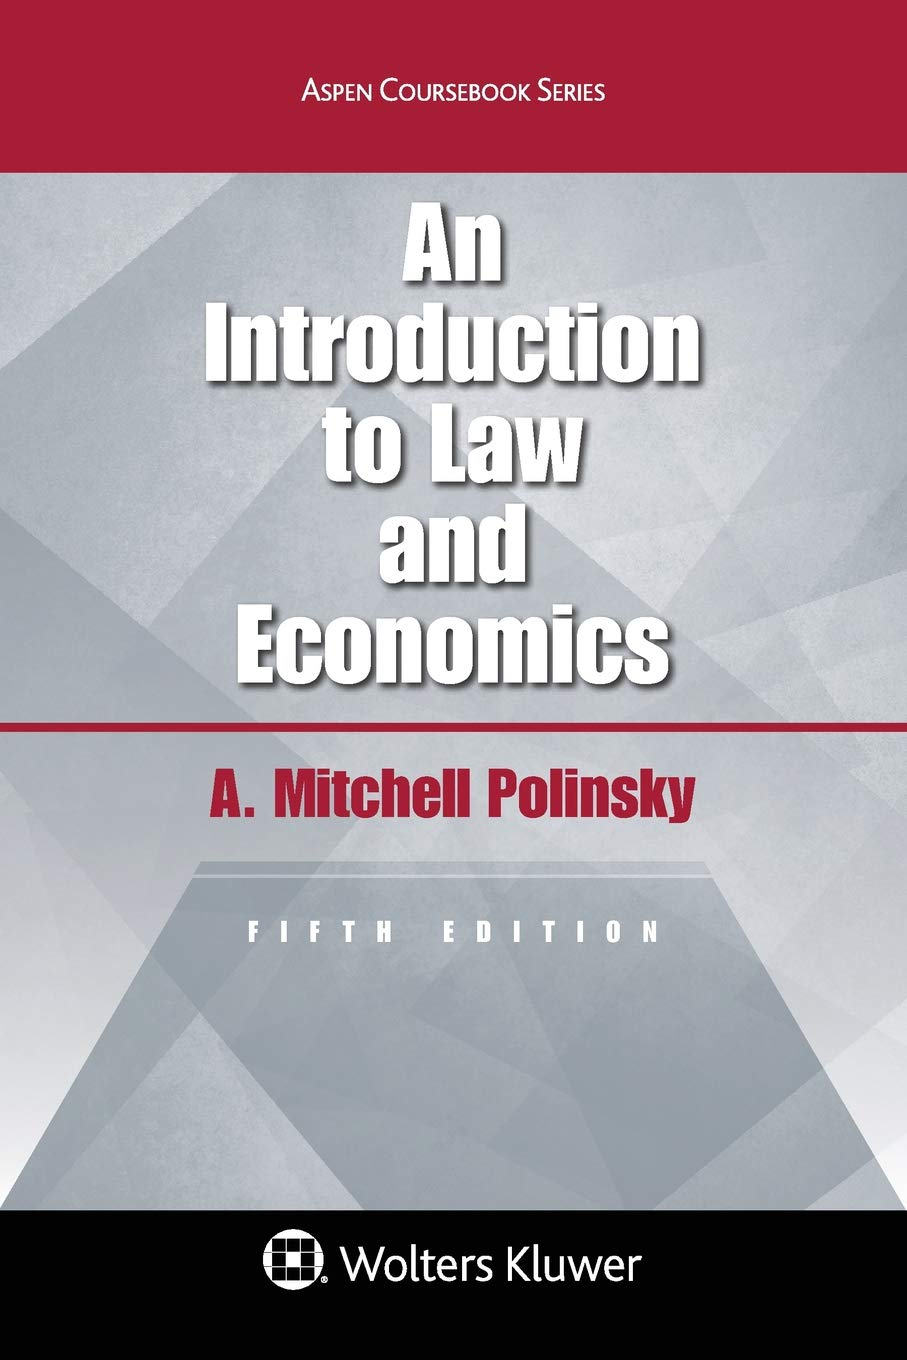 An Introduction to Law and Economics Image